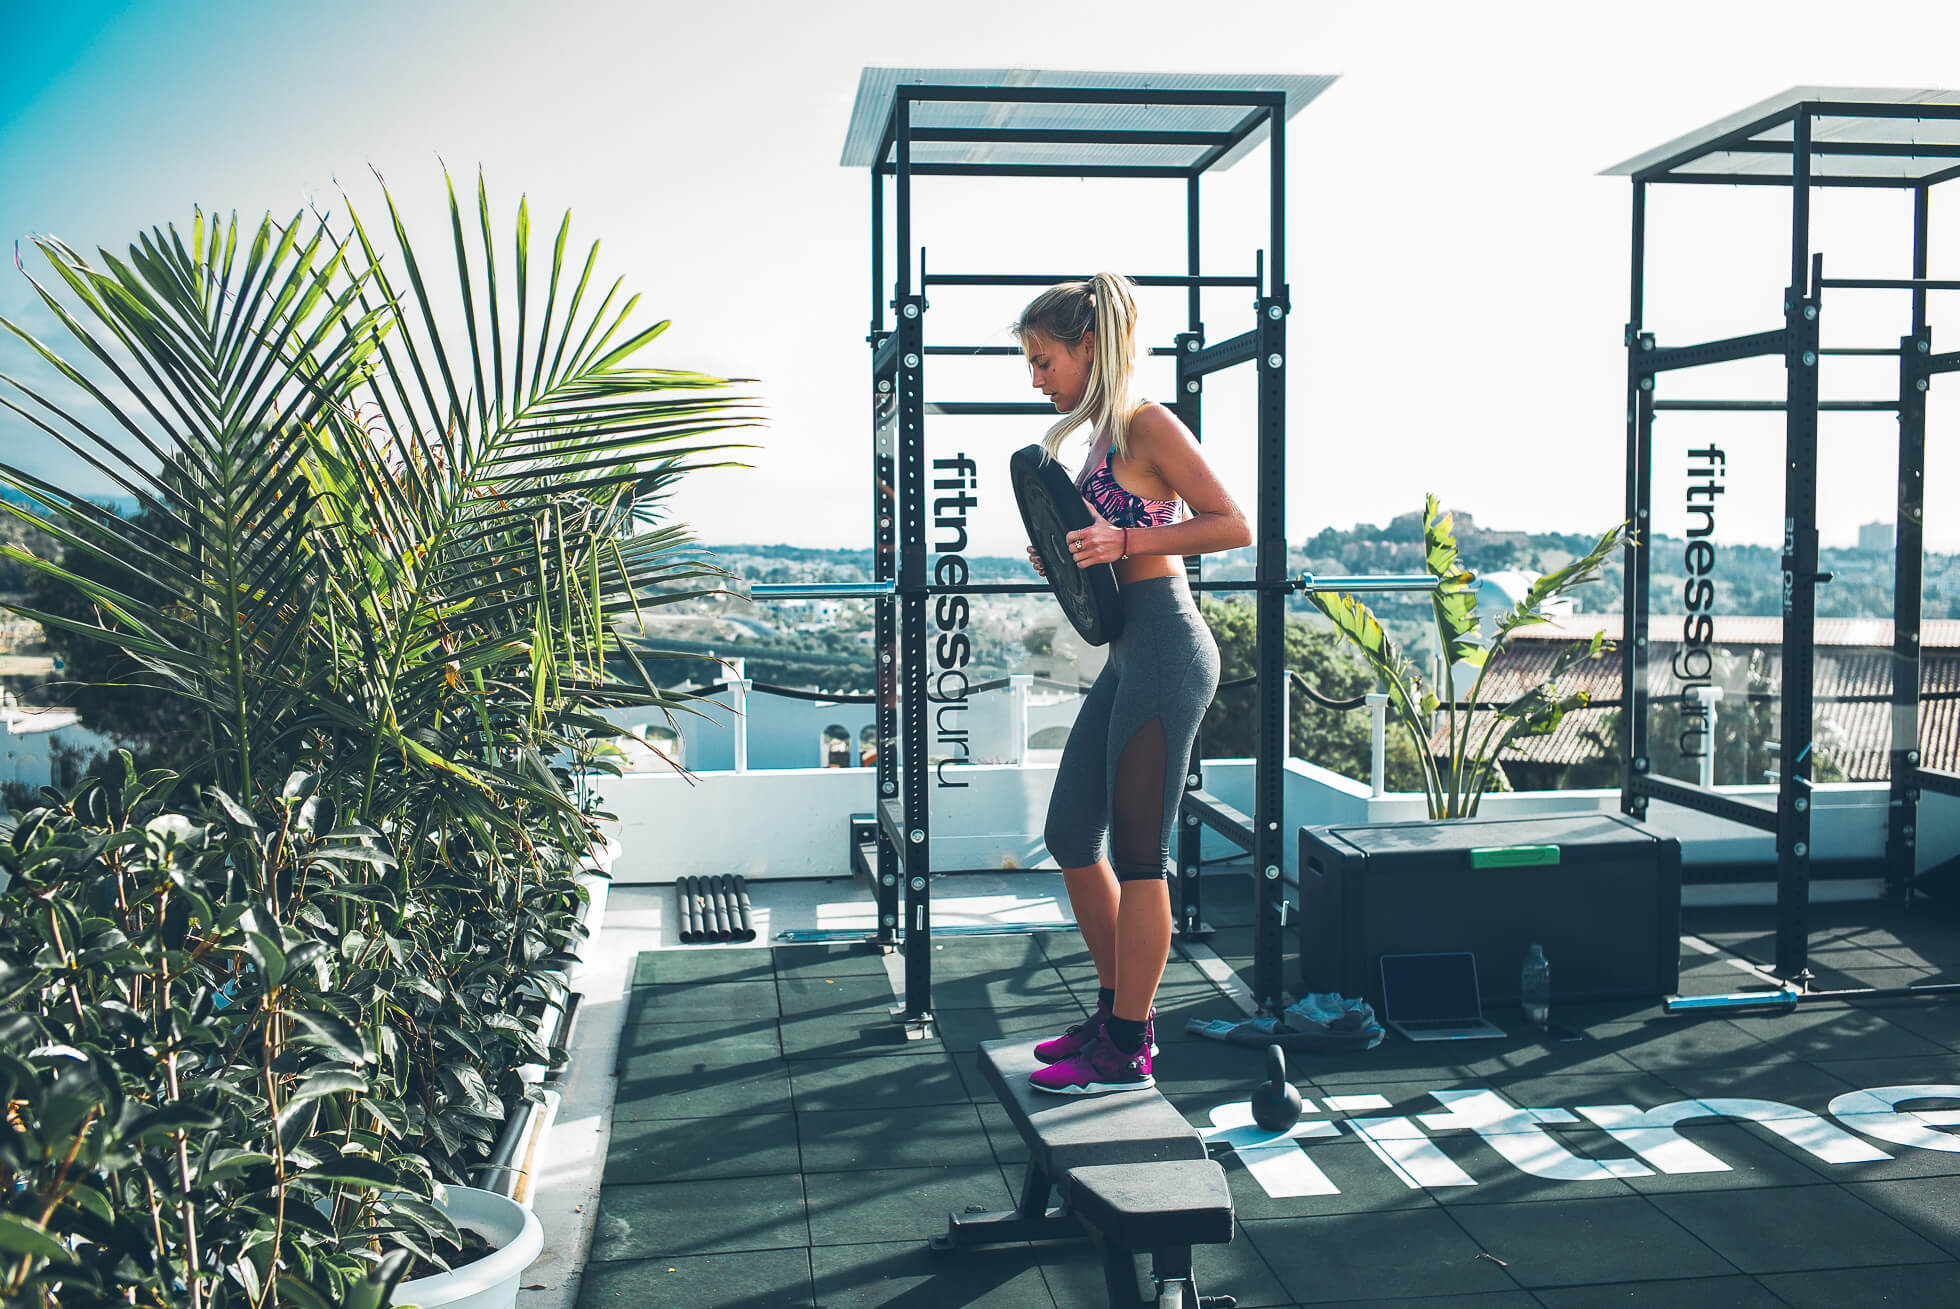 janni-deler-rooftop-workoutL1009023